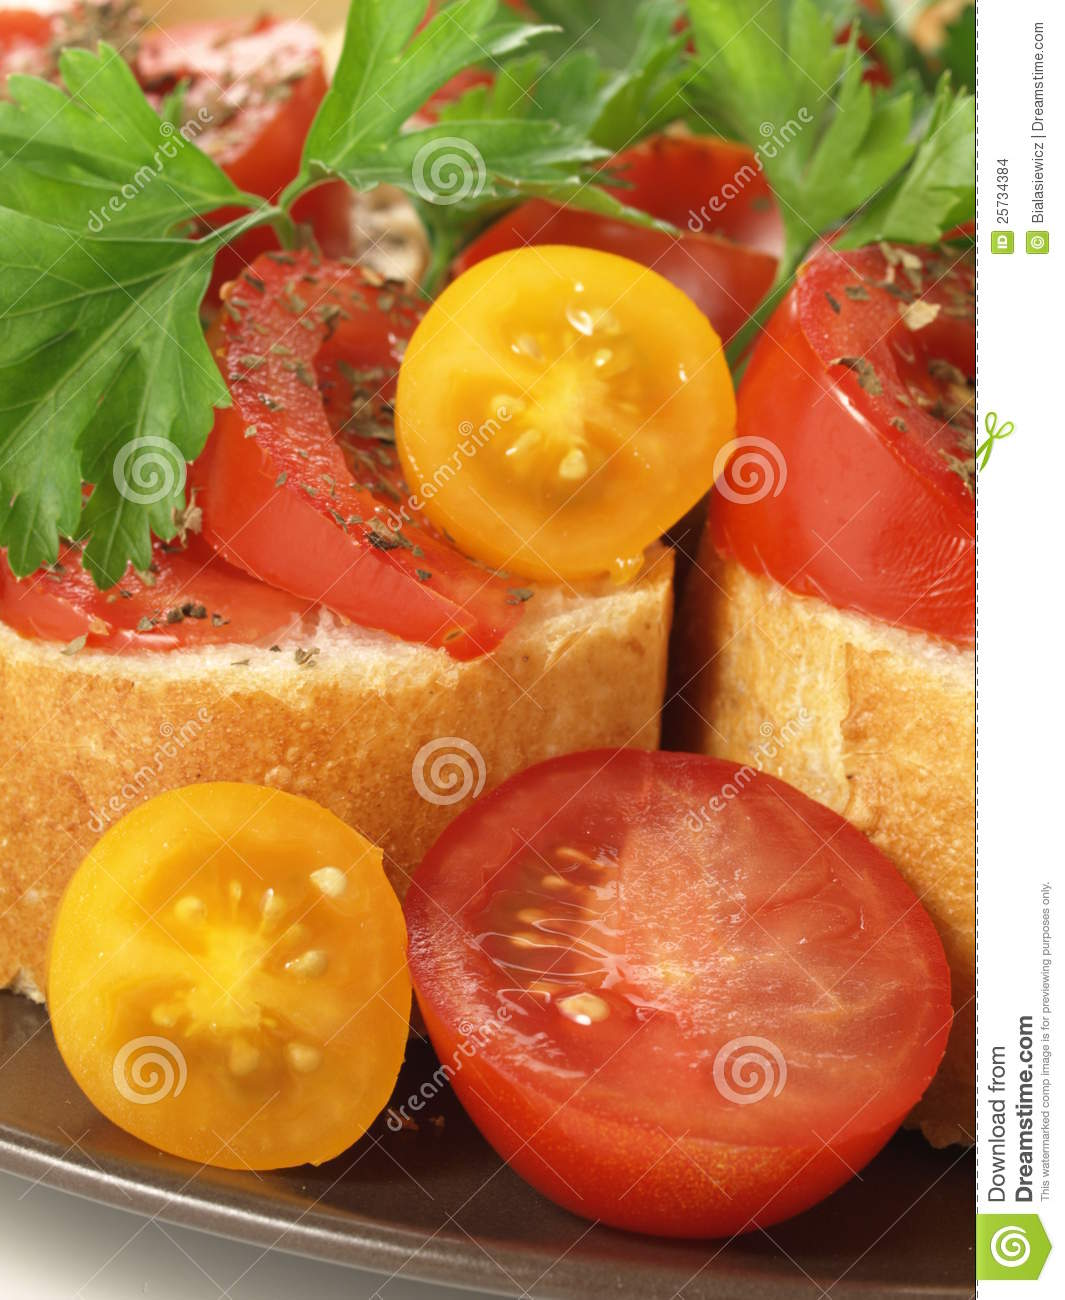 Baguette with tomatoes